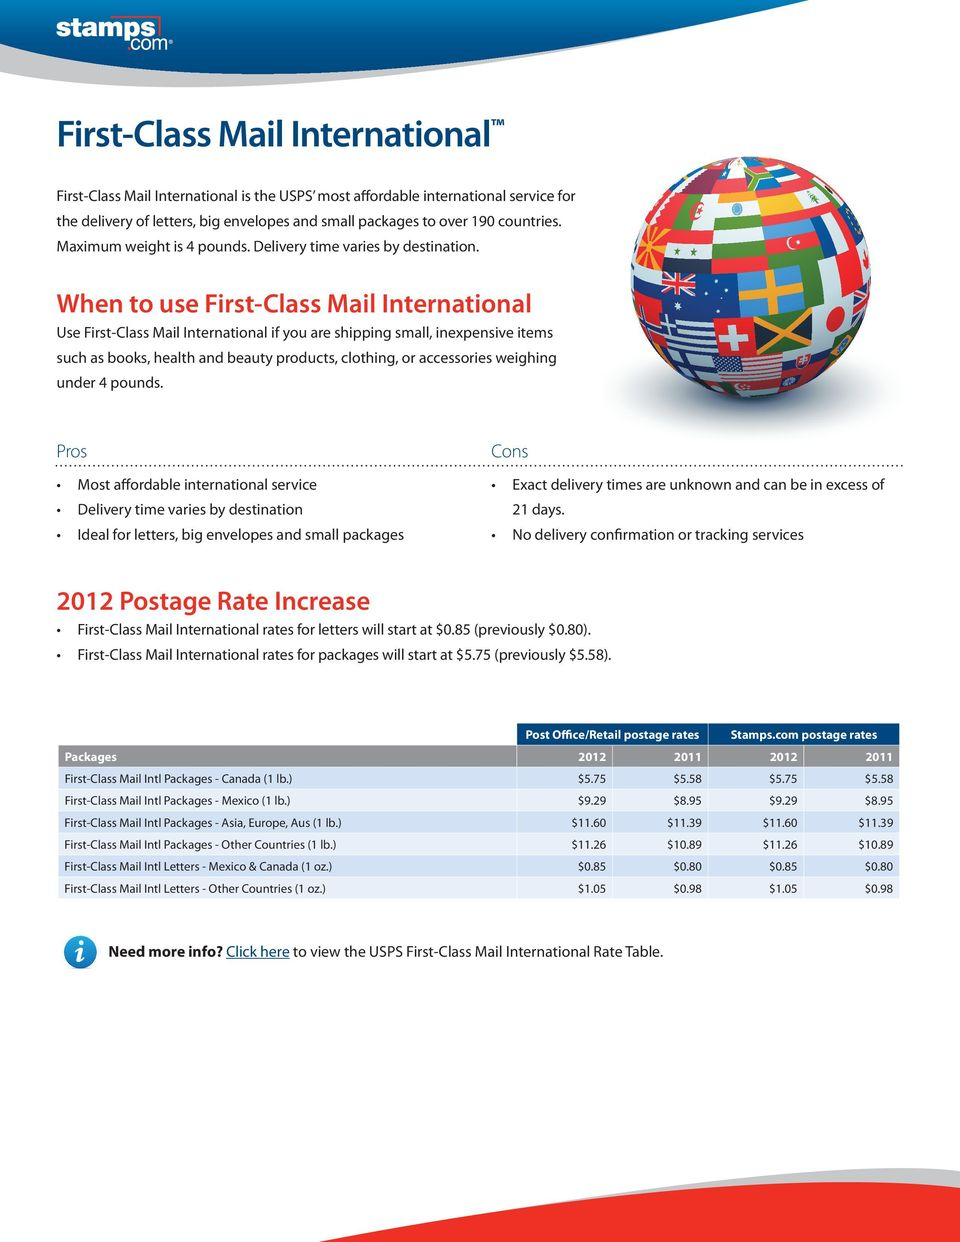 When to use First-Class Mail International Use First-Class Mail International if you are shipping small, inexpensive items such as books, health and beauty products, clothing, or accessories weighing